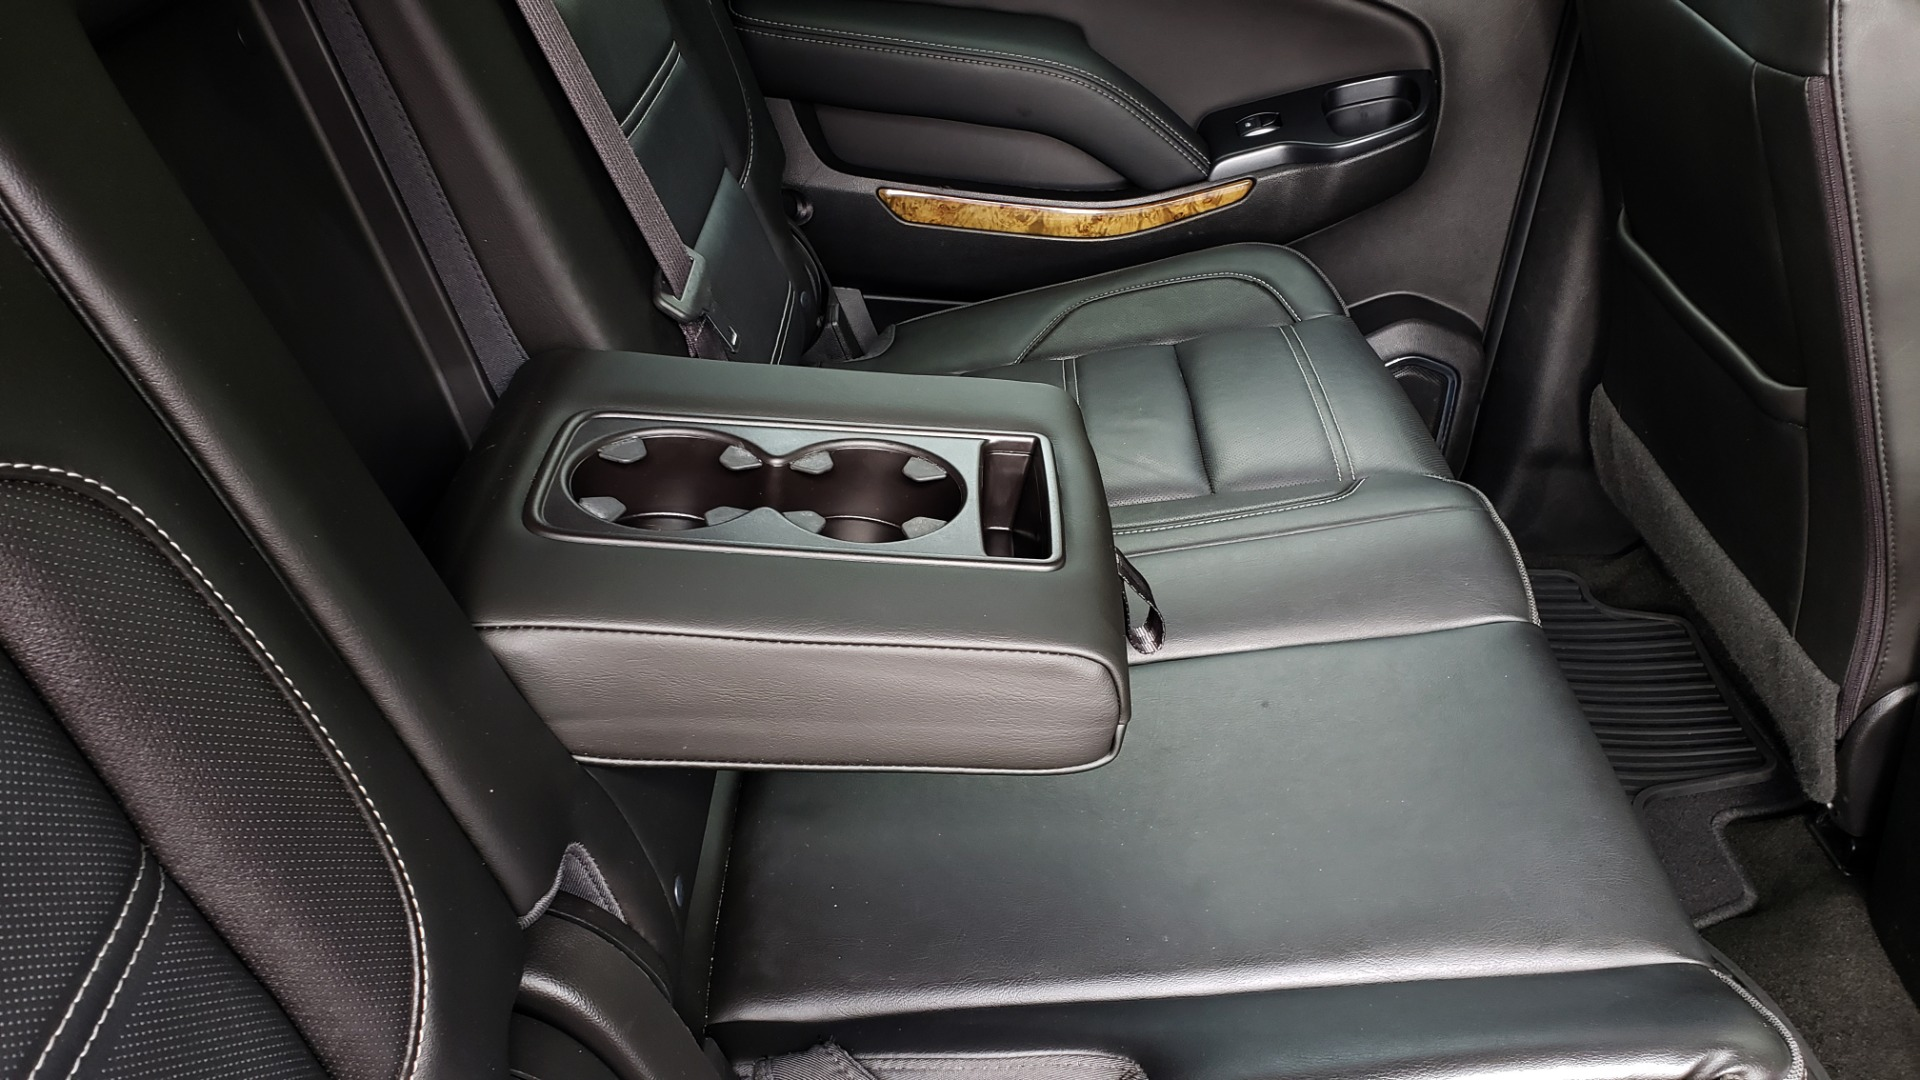 Used 2017 GMC YUKON XL DENALI 4WD / NAV / SUNROOF / ENT / 3-ROWS / BOSE / REARVIEW for sale $48,695 at Formula Imports in Charlotte NC 28227 85